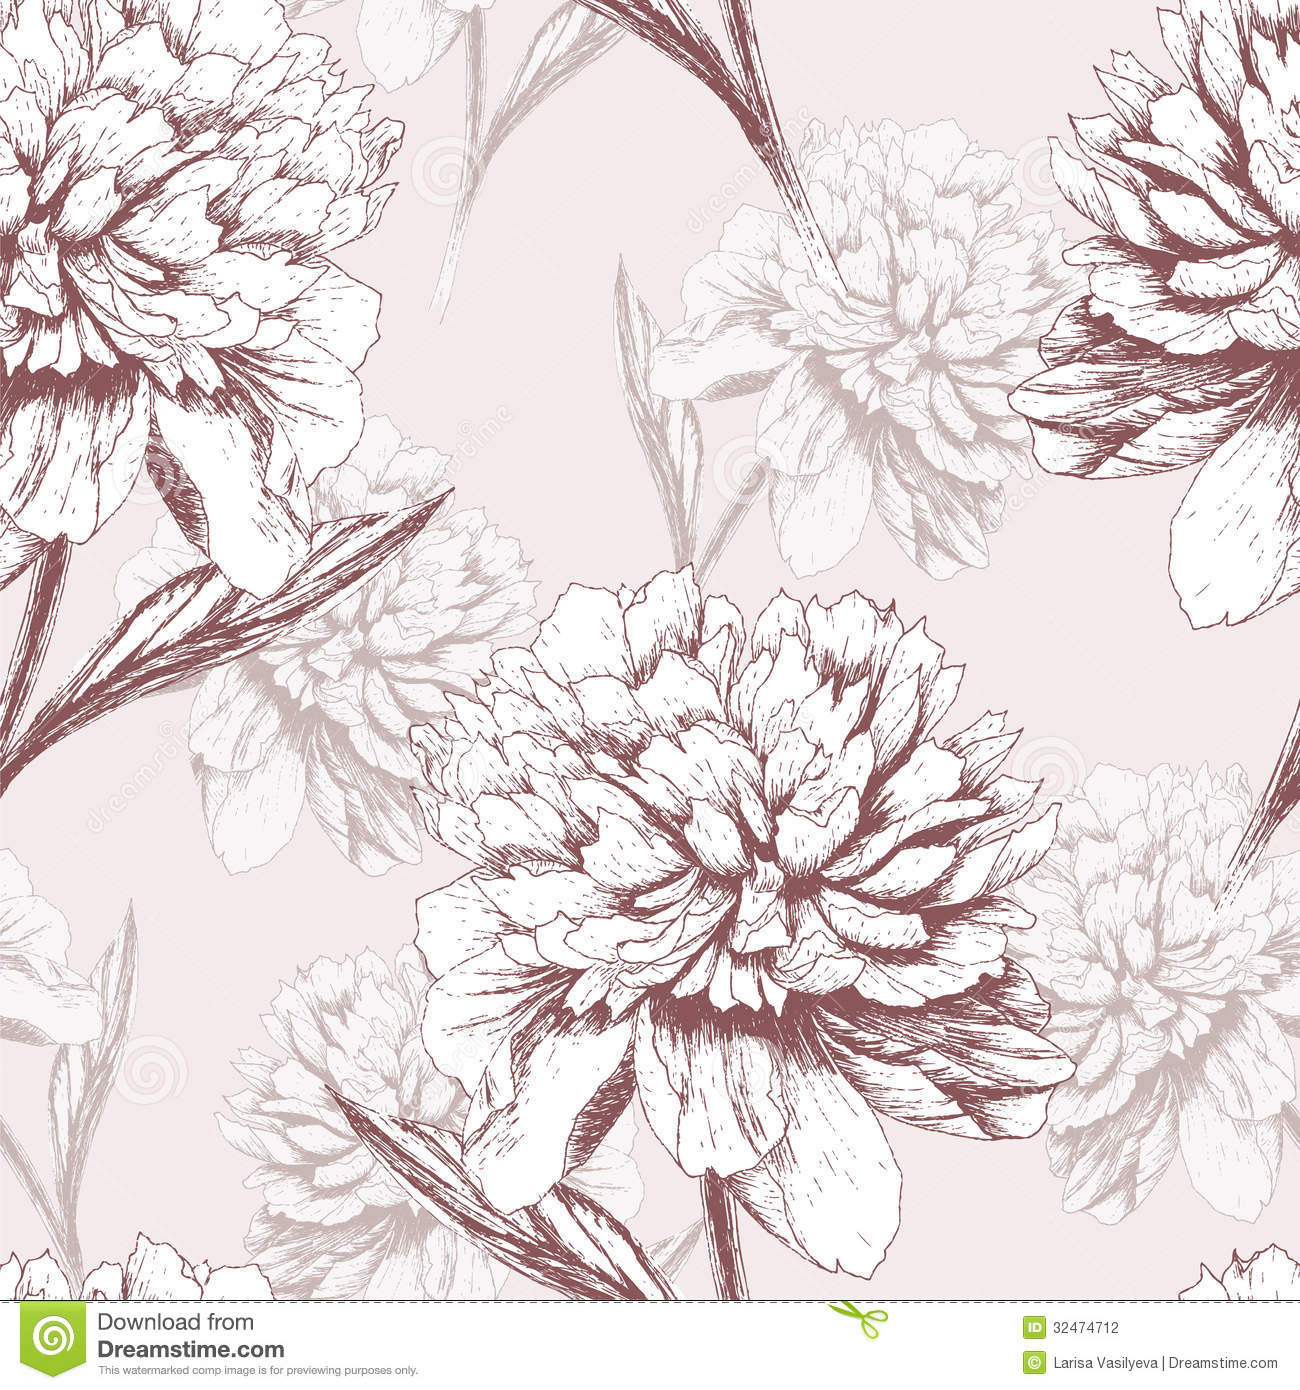 Peony flower isolated on white stock vector 368014568 shutterstock - Peony Pattern Stock